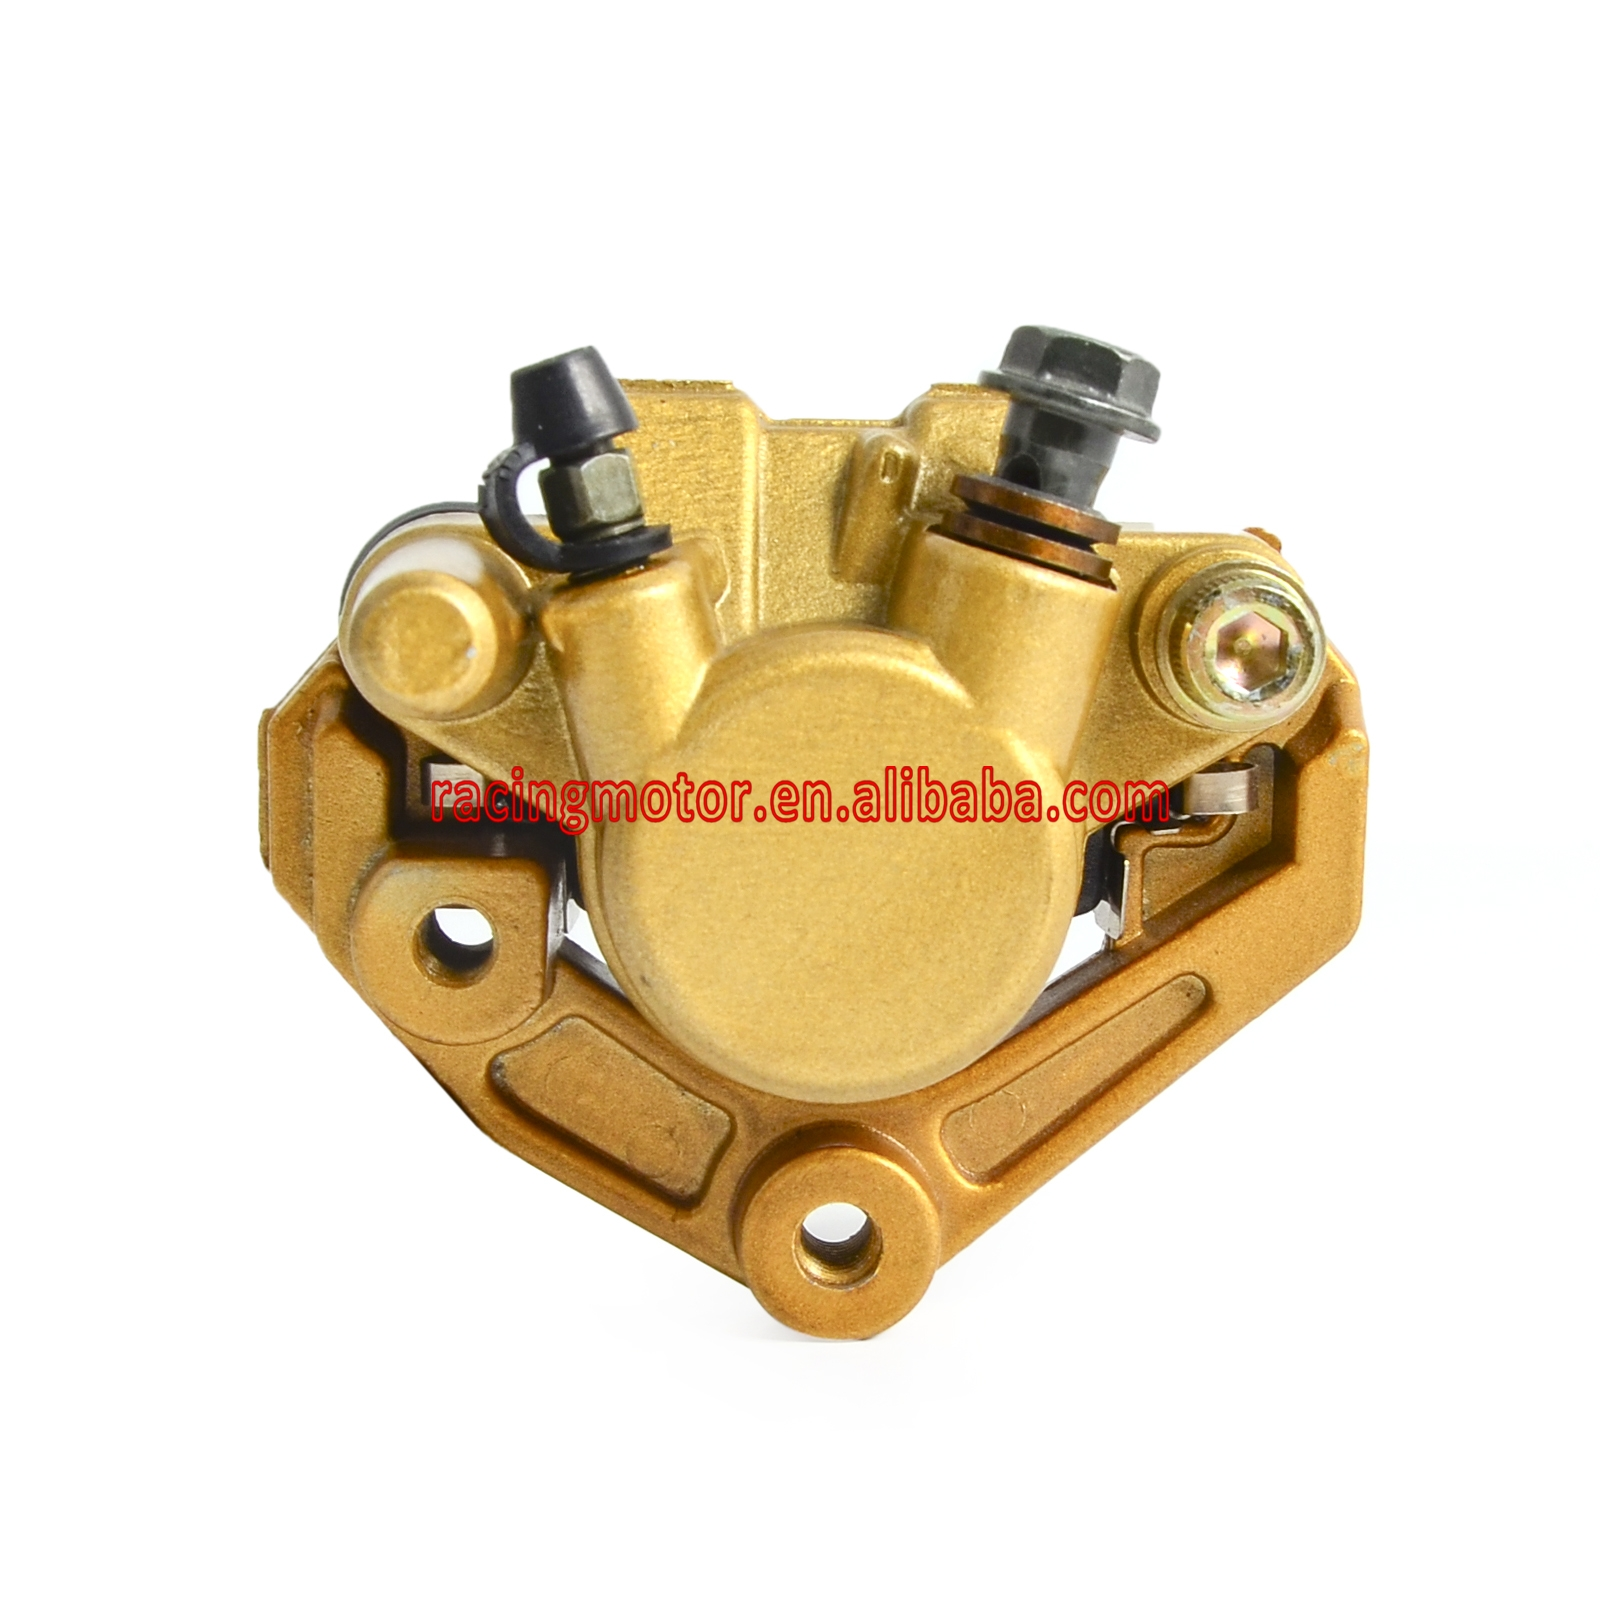 Scooter Moped Front Brake Caliper With Pads for Yamaha ZUMA 50cc YW50 2002-2011 YW 50 NEW scooter moped front brake caliper with pads for yamaha zuma 50cc yw50 2002 2011 yw 50 new